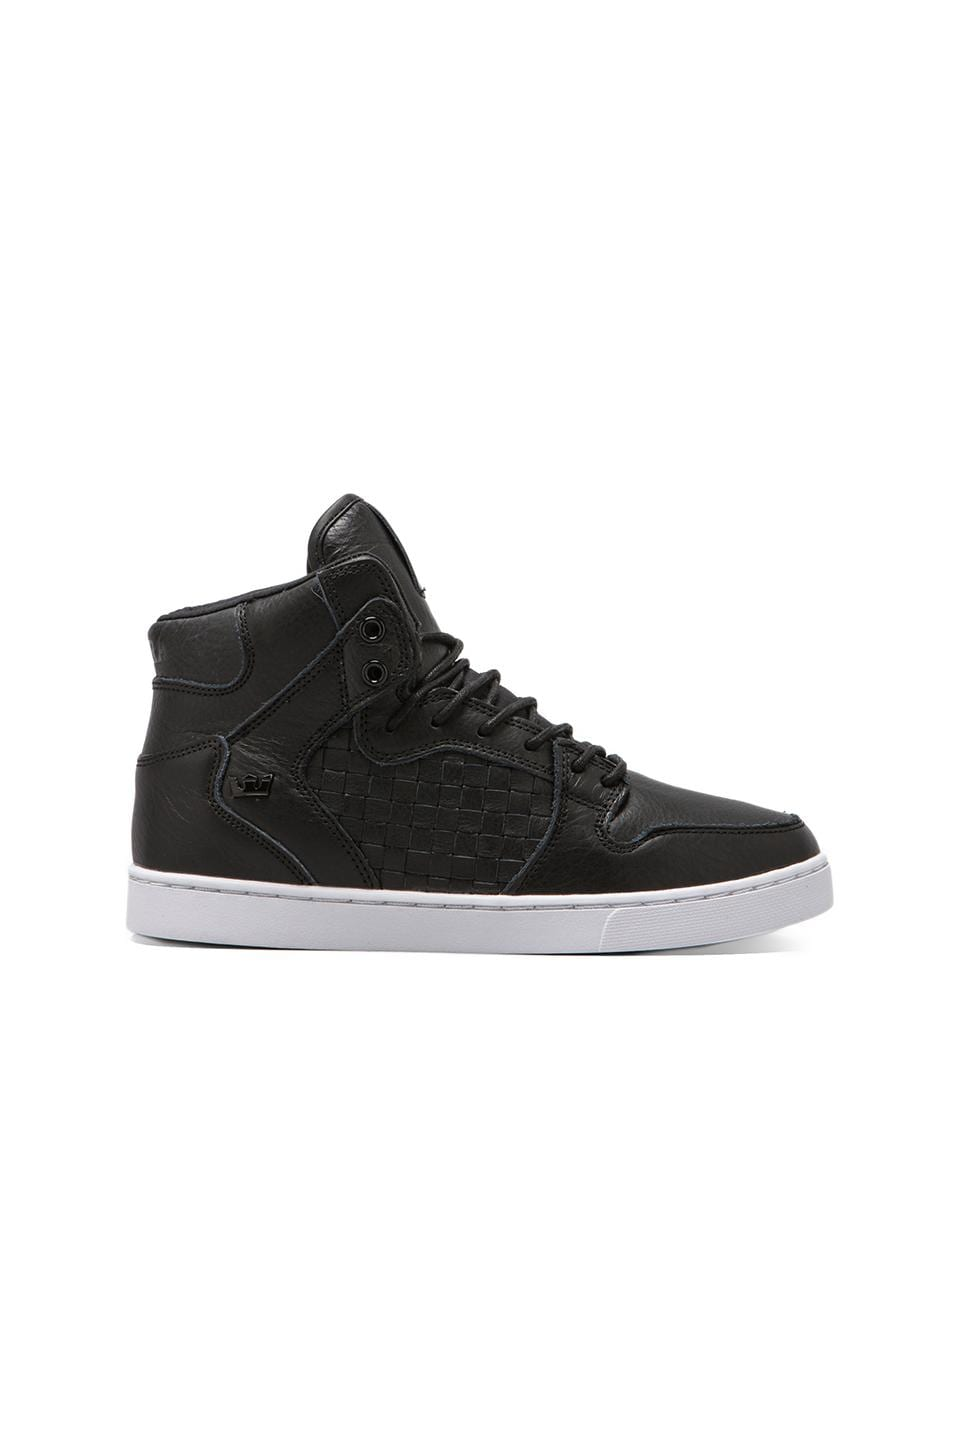 Supra Vaider LX Woven Leather in Black